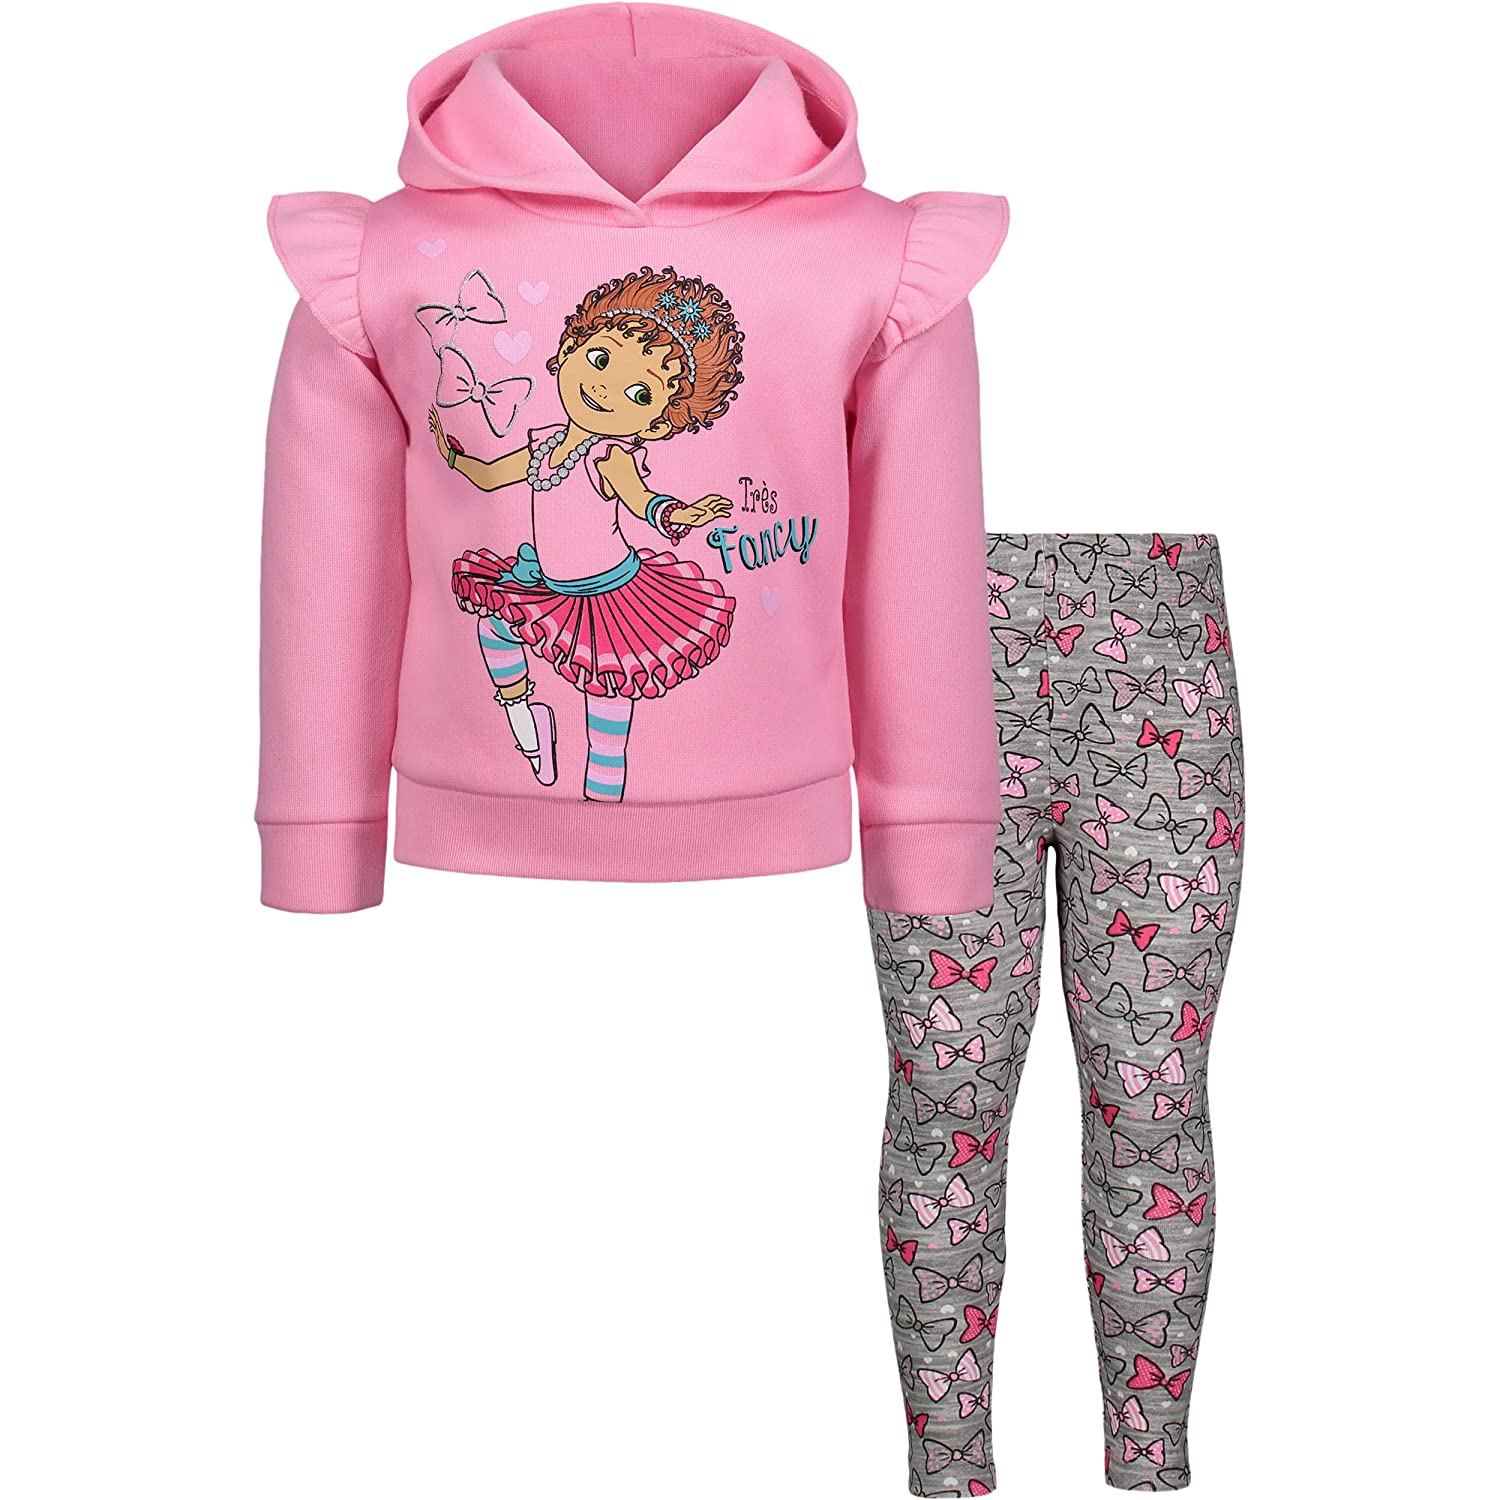 Disney Fancy Nancy Toddler Girls' Fleece Hoodie & Leggings Clothing Set